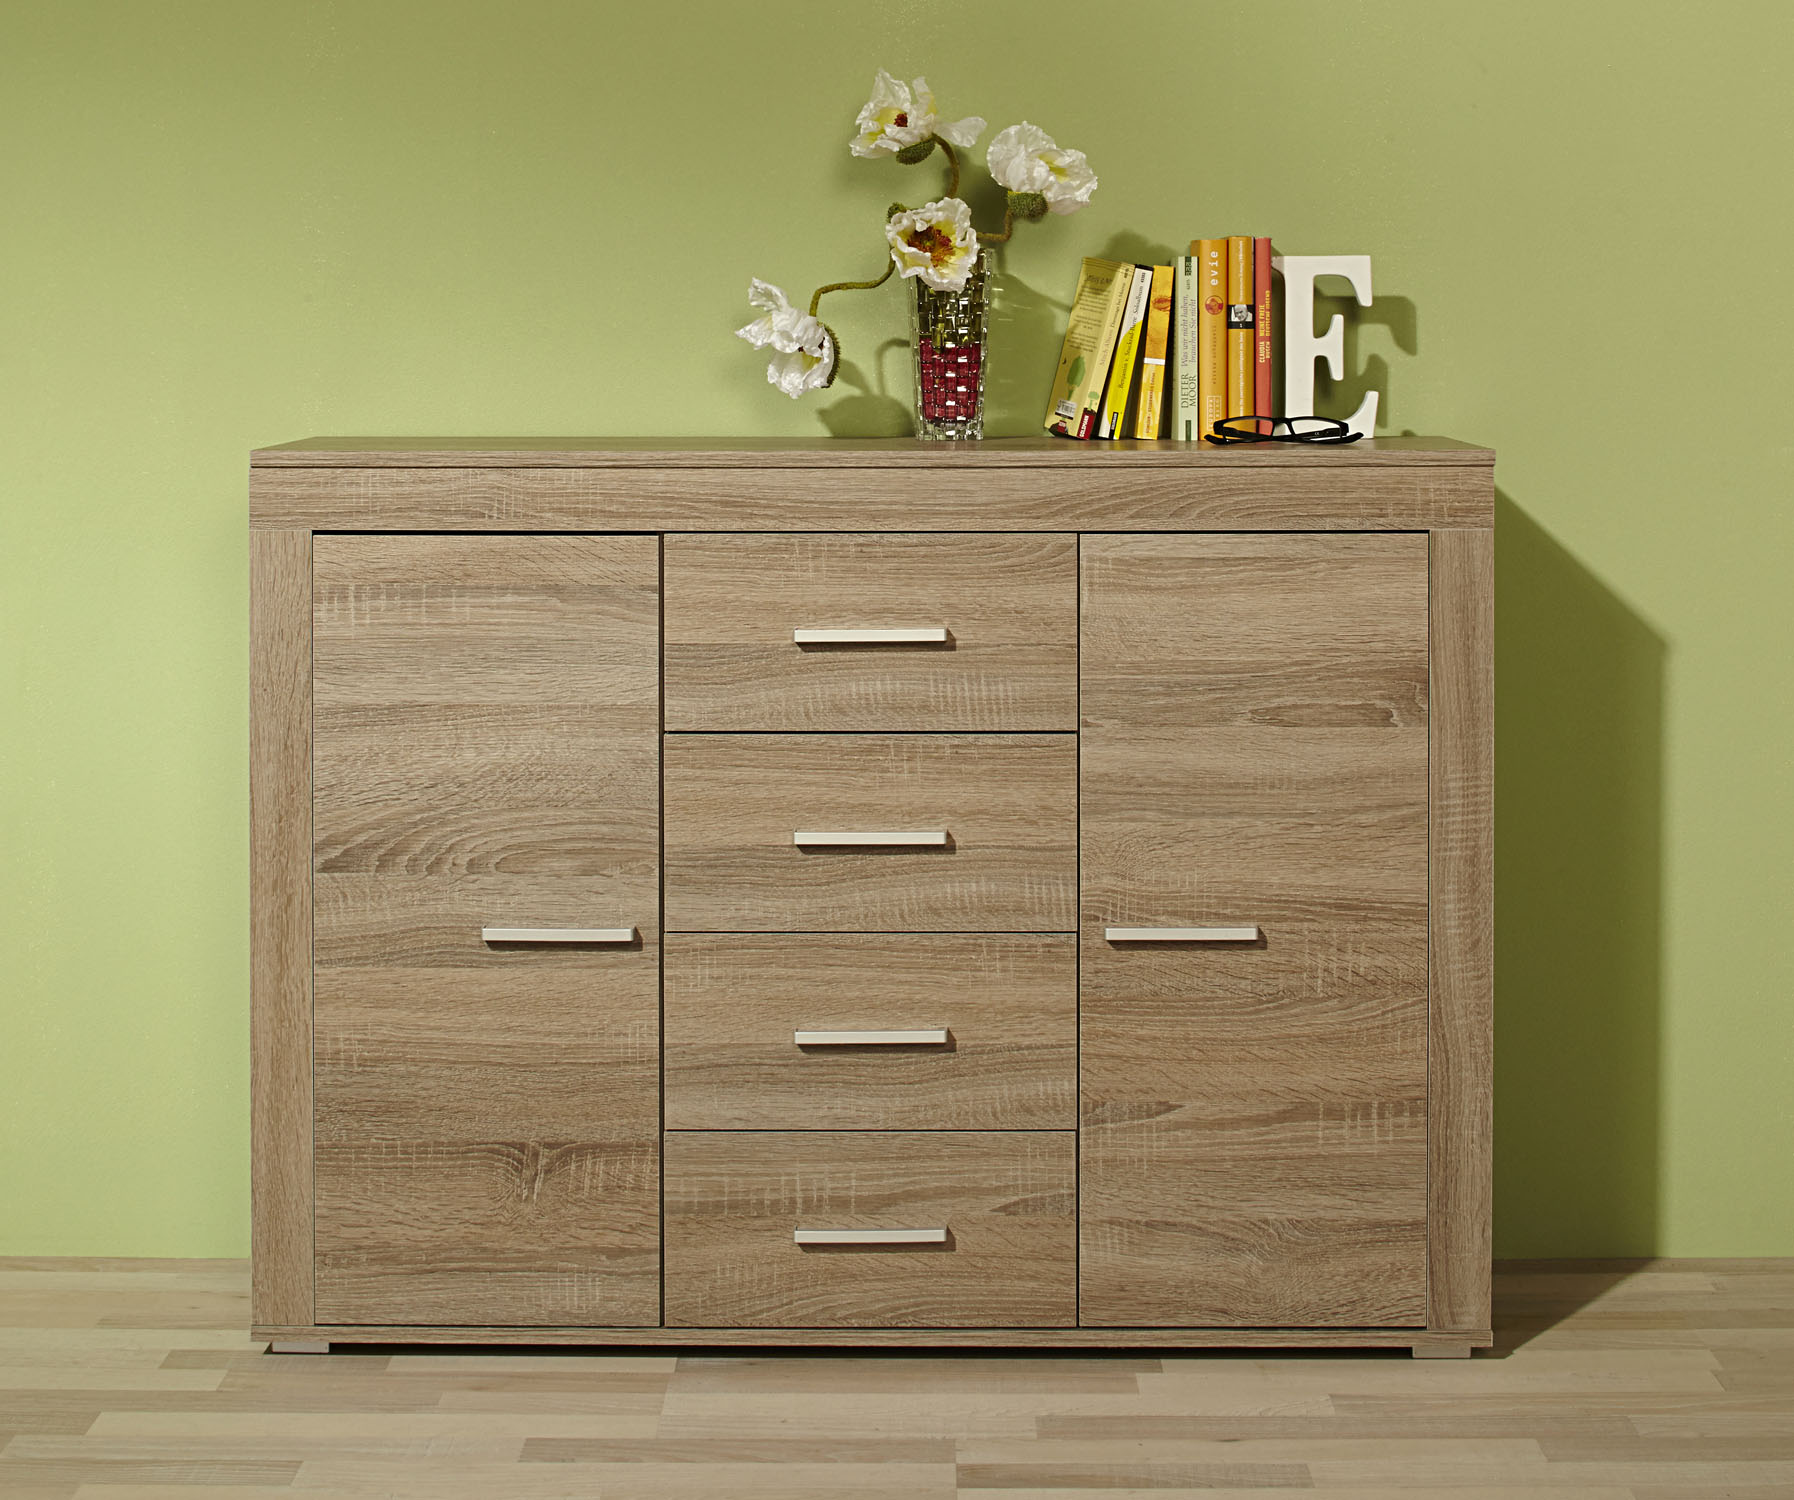 Kommode Sideboard Highboard Anrichte Schrank Kernbuche